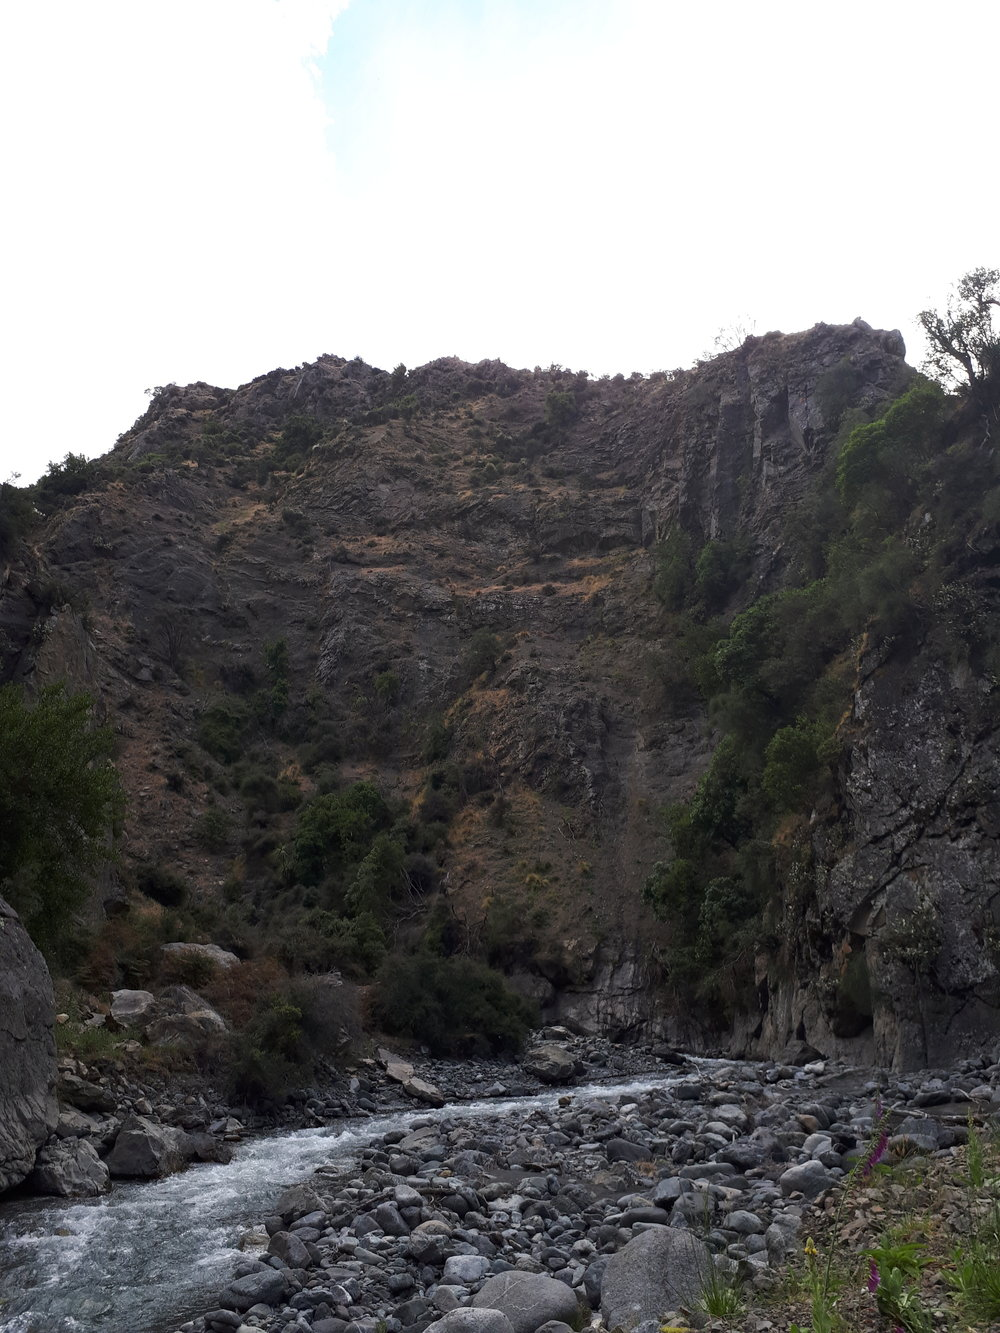 The trip up the Hodder river canyons takes 4 to 5 hours and up to 80 river crossings before arriving at the Hodder hutsite below the mountain.